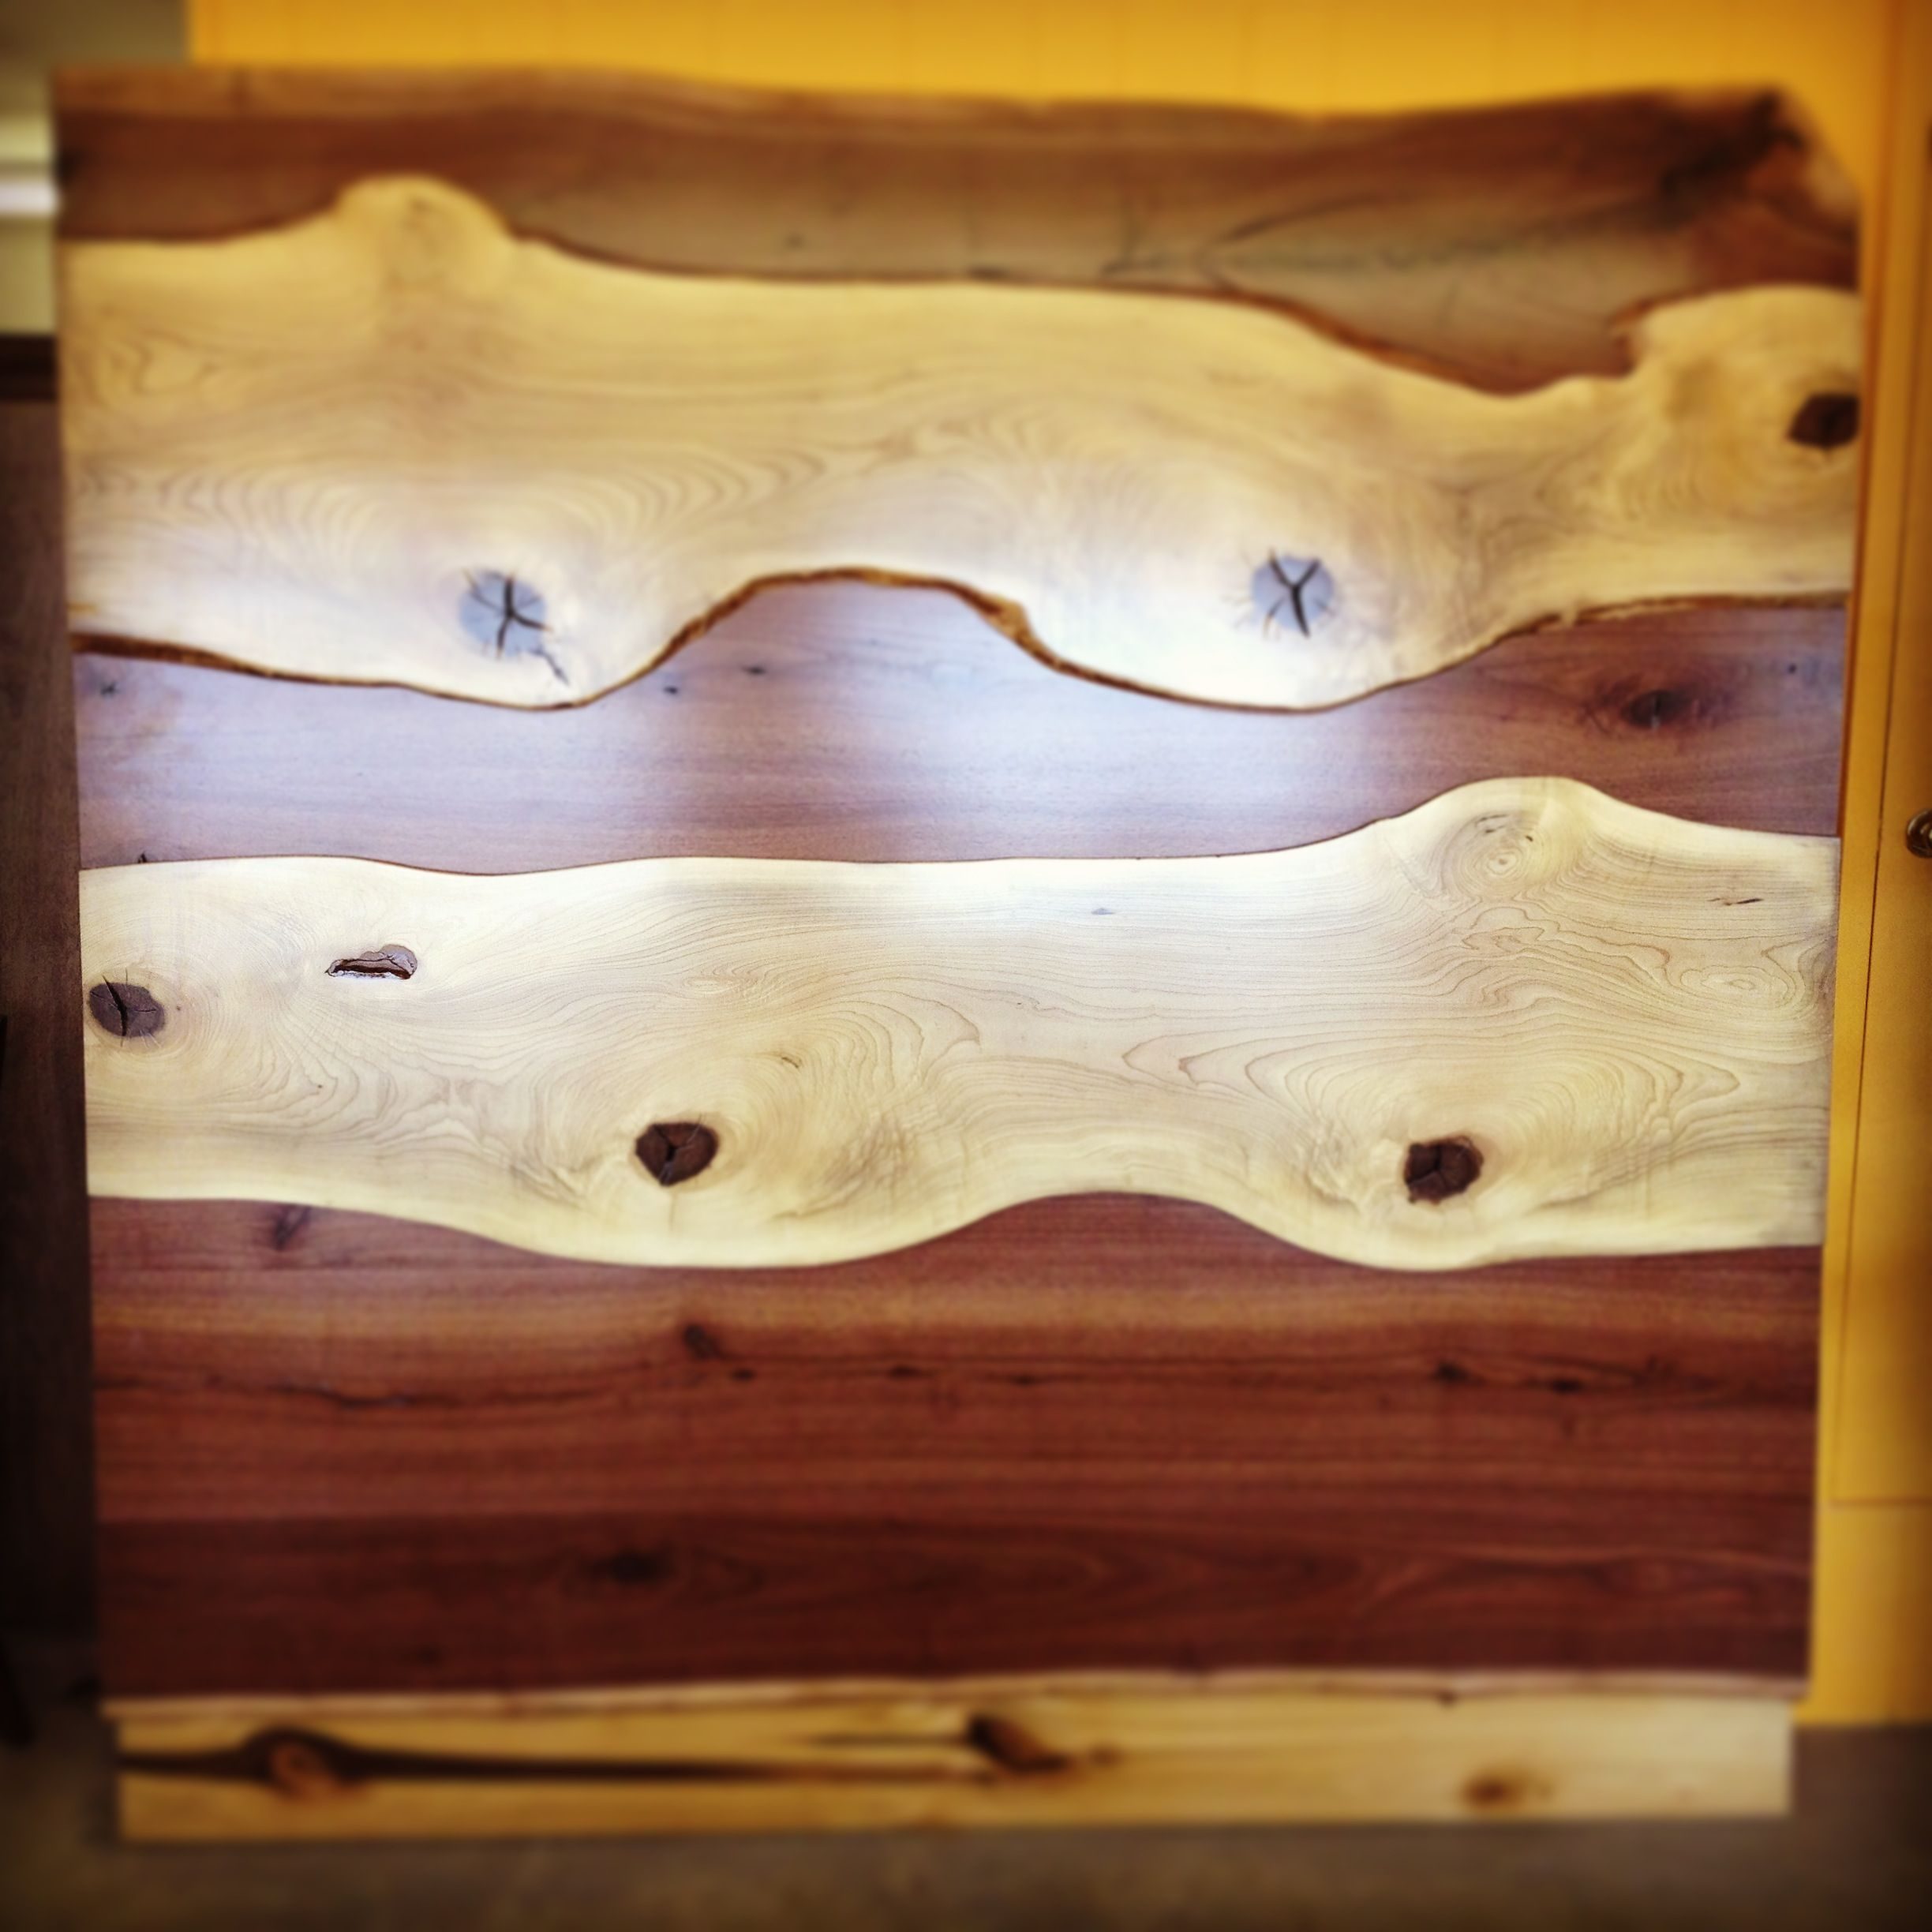 Superior Custom Designed King Headboard Using Black Walnut And Magnolia Wood.